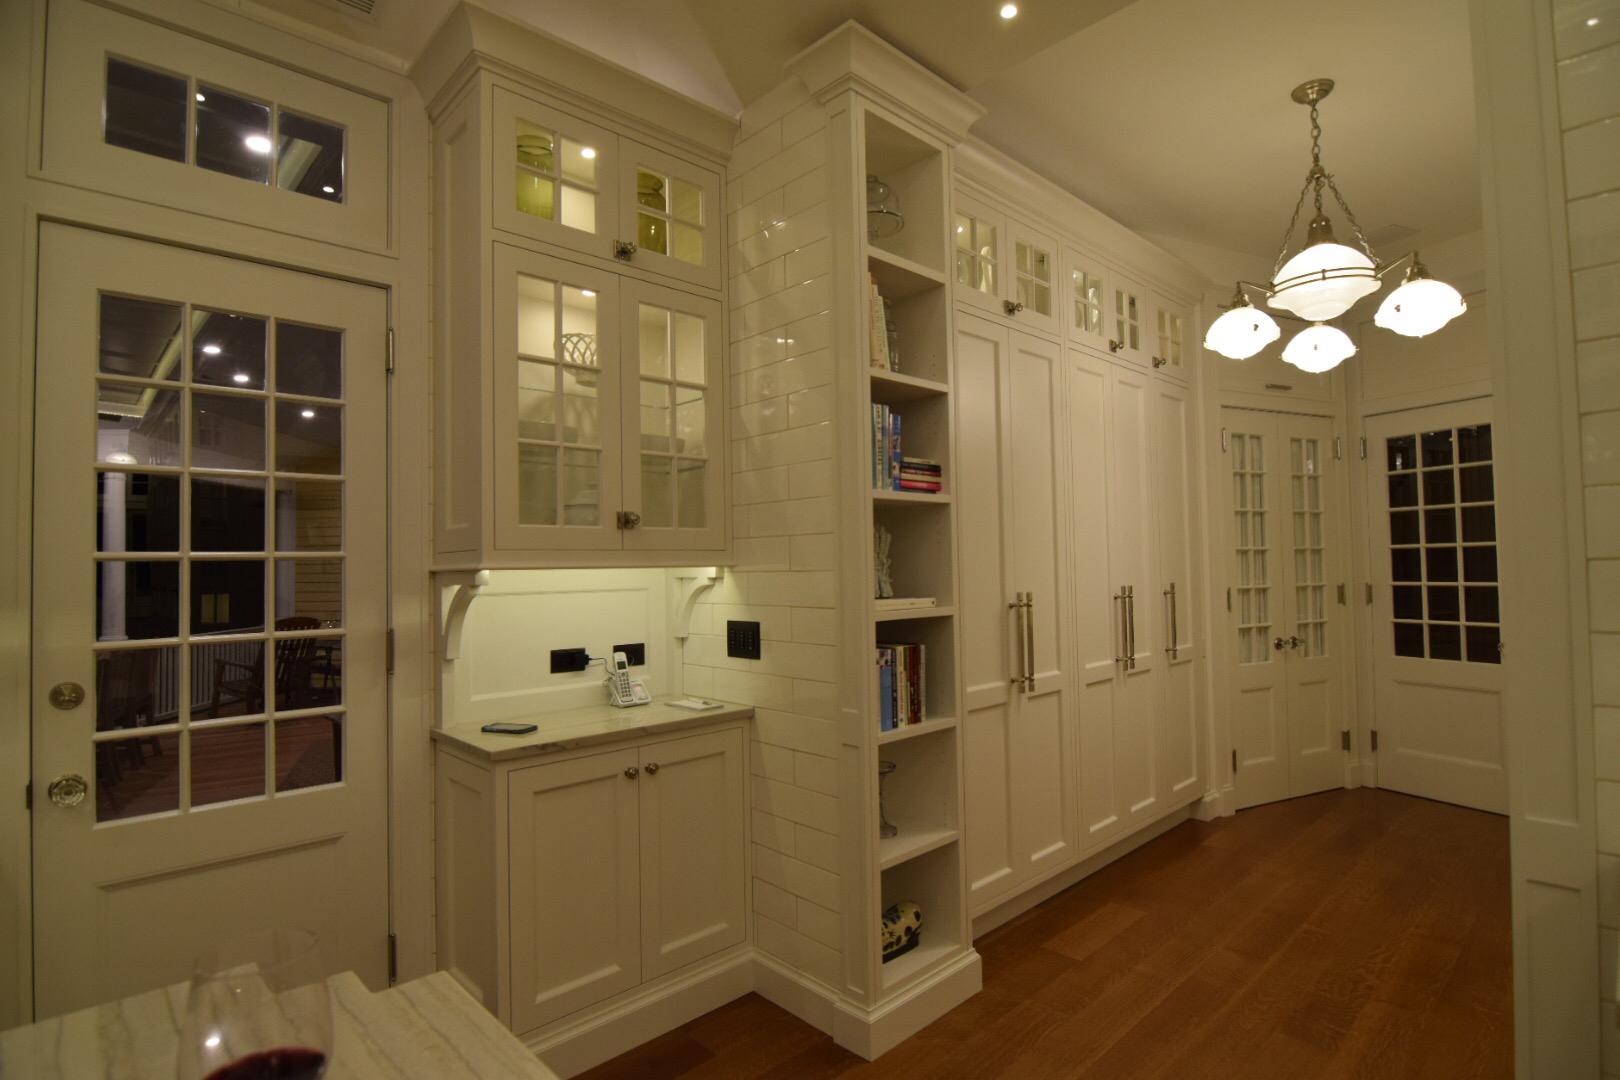 traditional-custom-kitchen-with-1890s-style-custom-architectural-doors.jpg